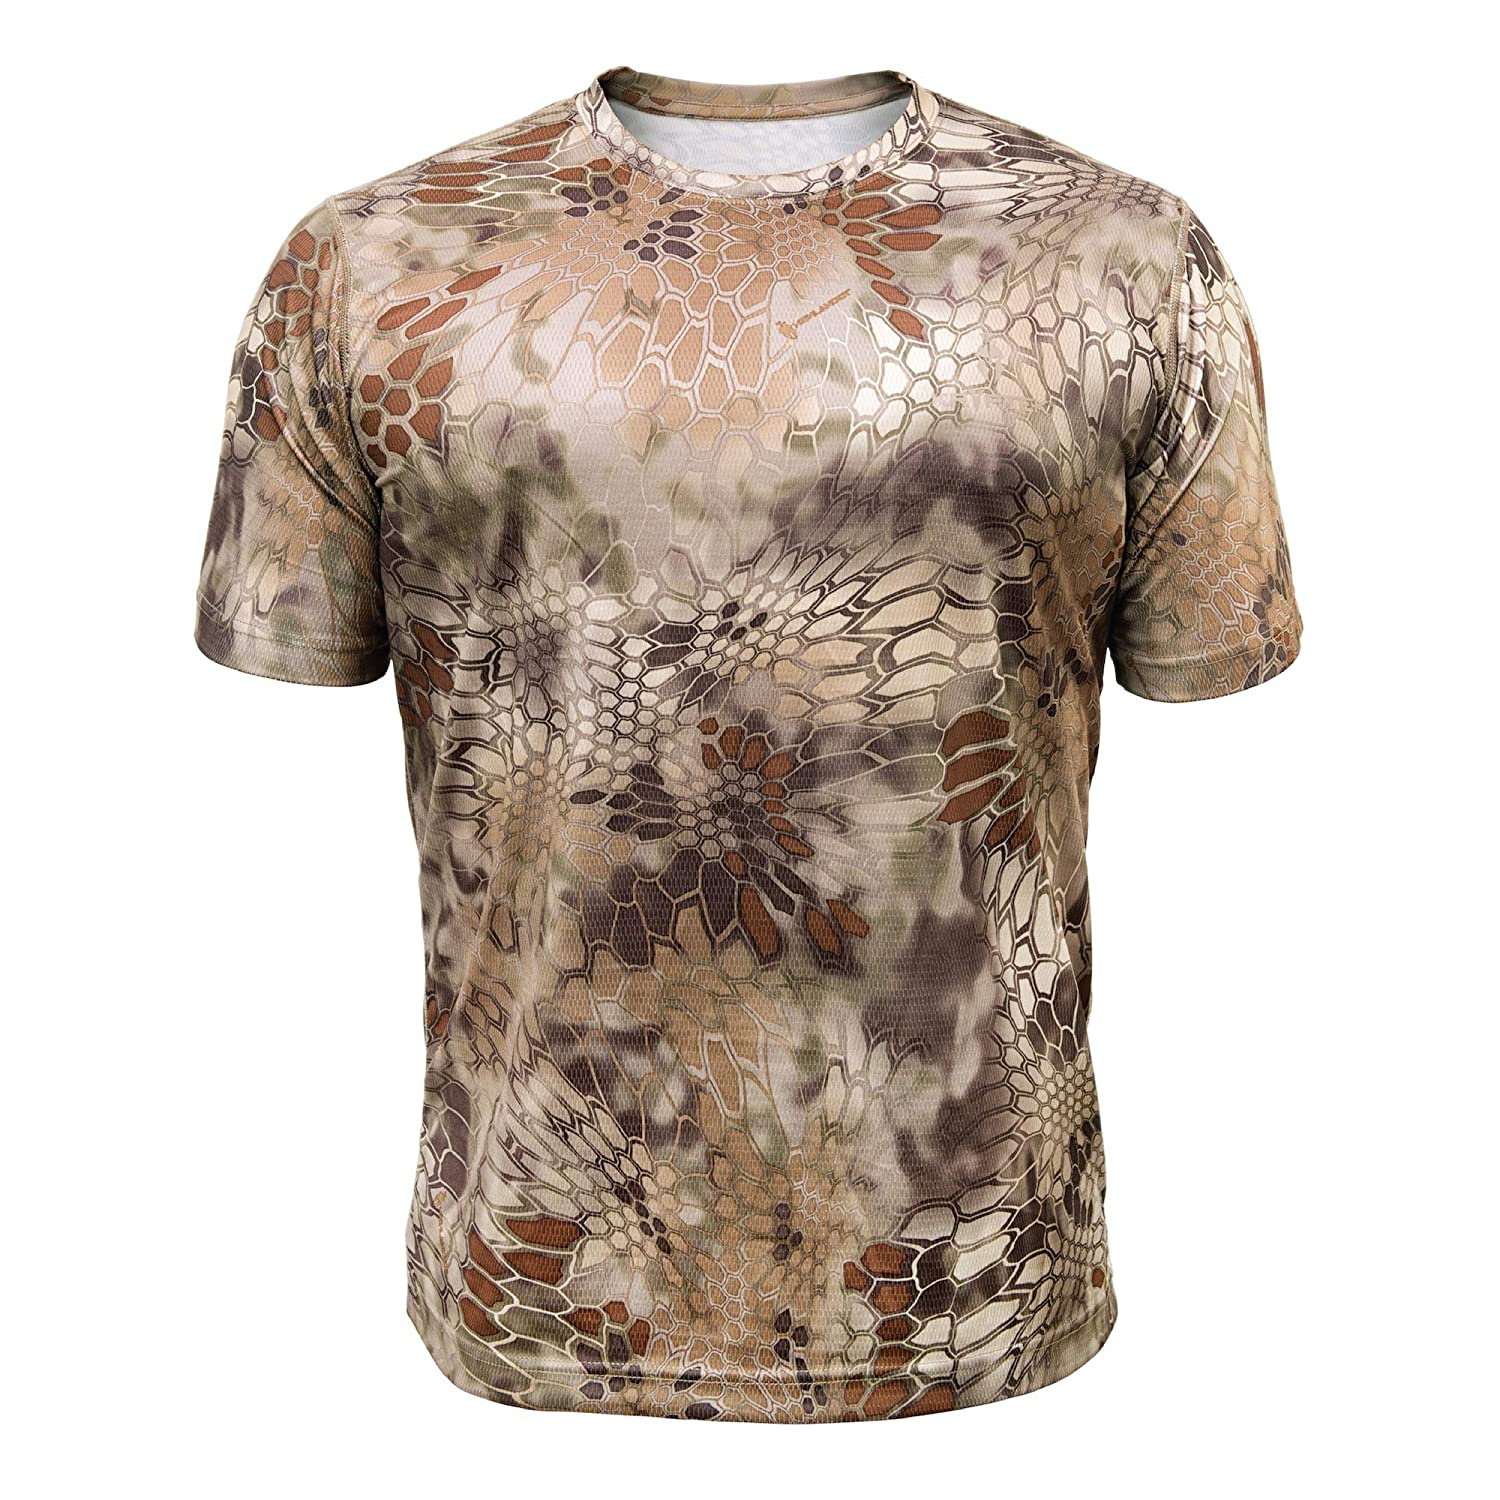 e1b0ef5671c5 Amazon.com : Kryptek Hyperion SS Crew - Short Sleeve Camo Hunting & Fishing  Shirt (K-Ore Collection) : Clothing